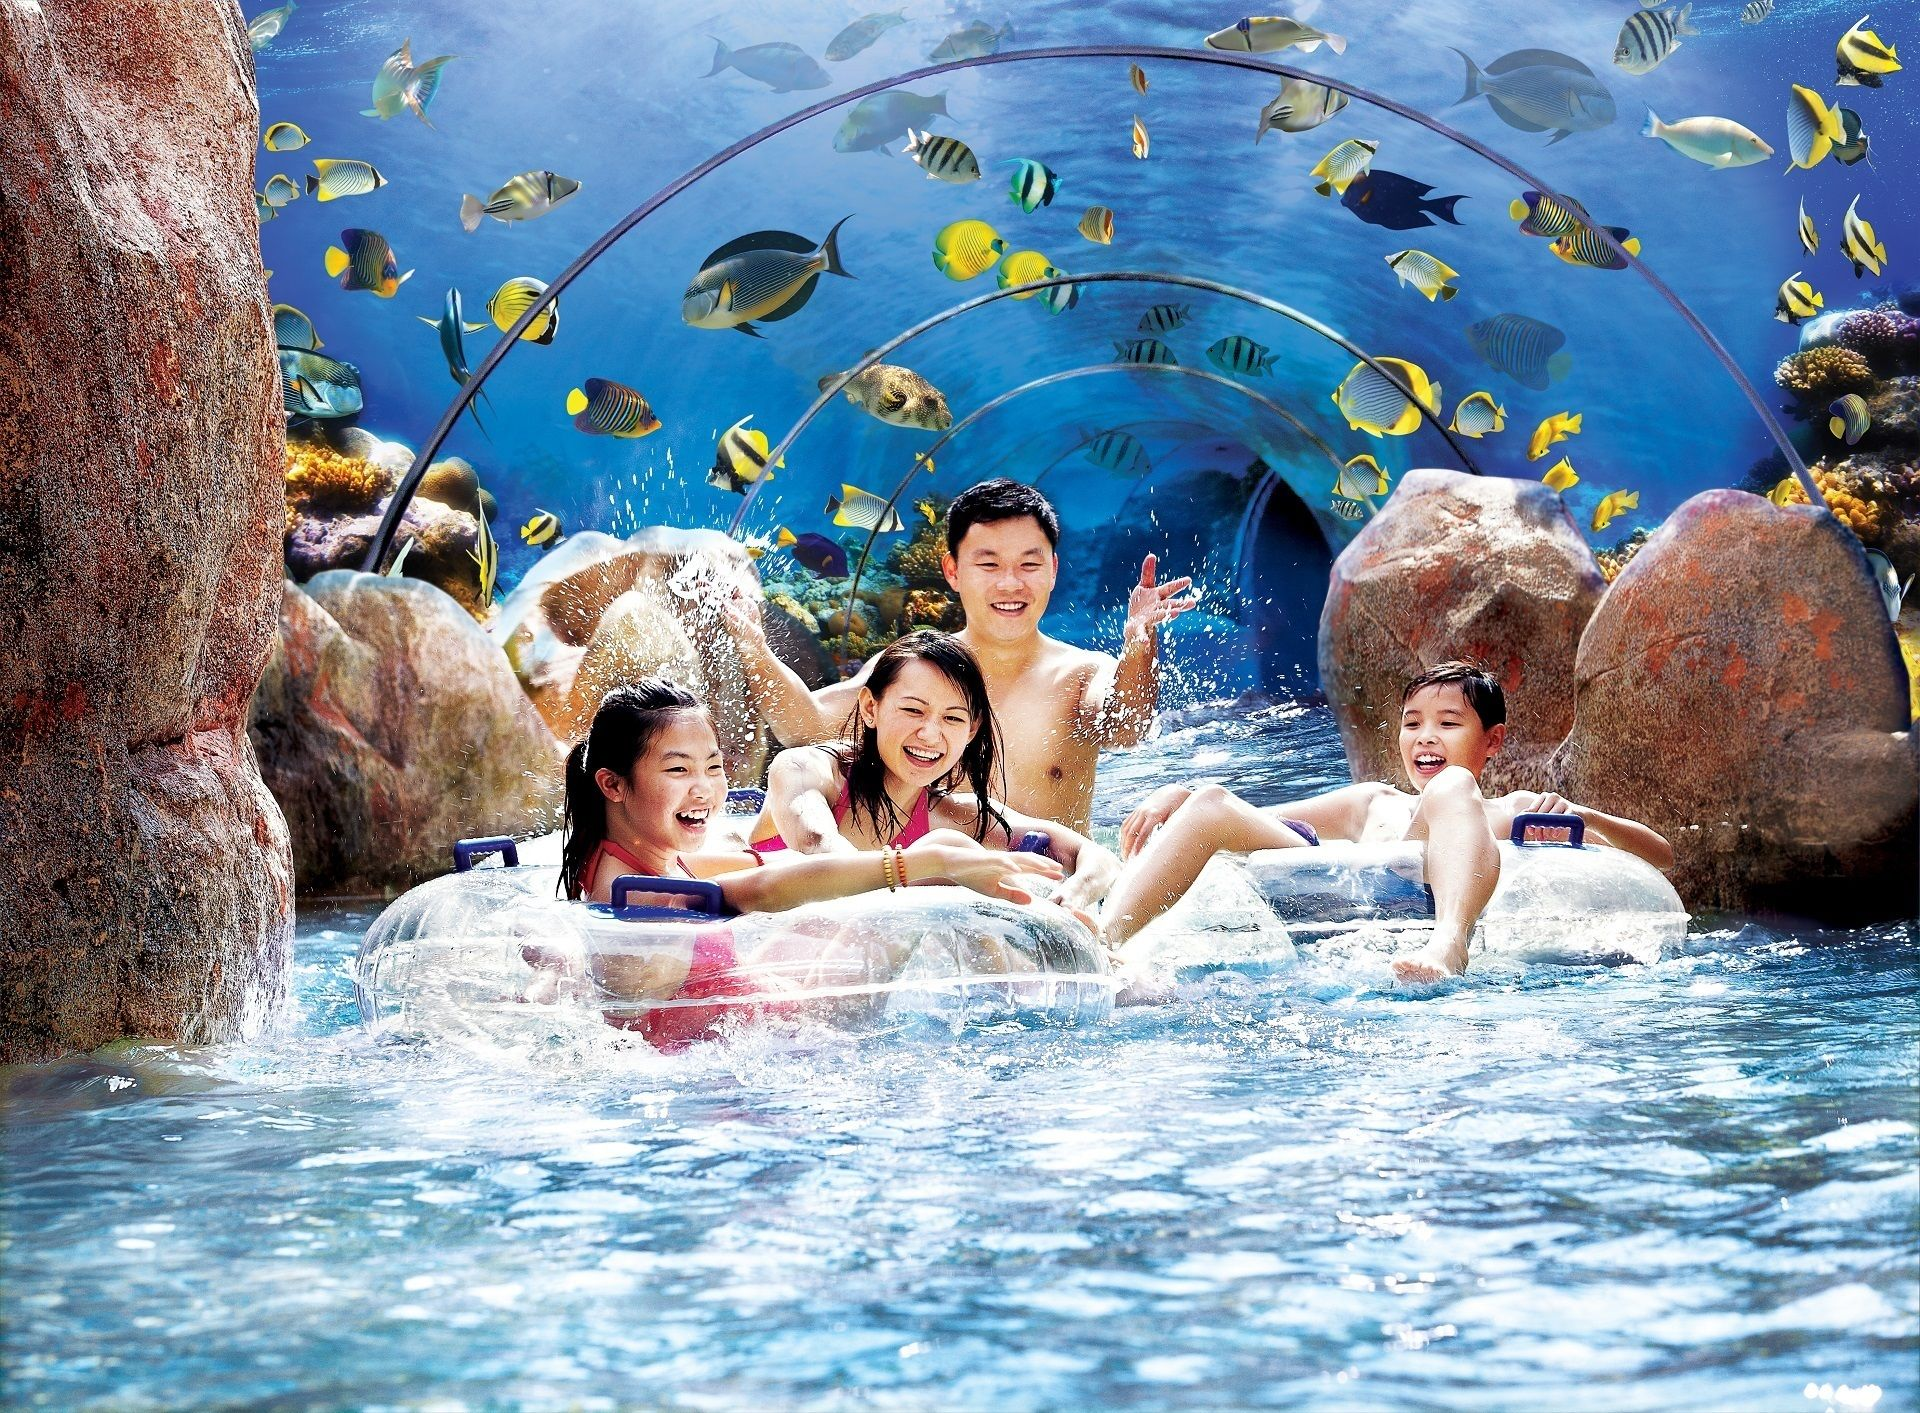 Adventure River Surround Aquarium_MR.jpg